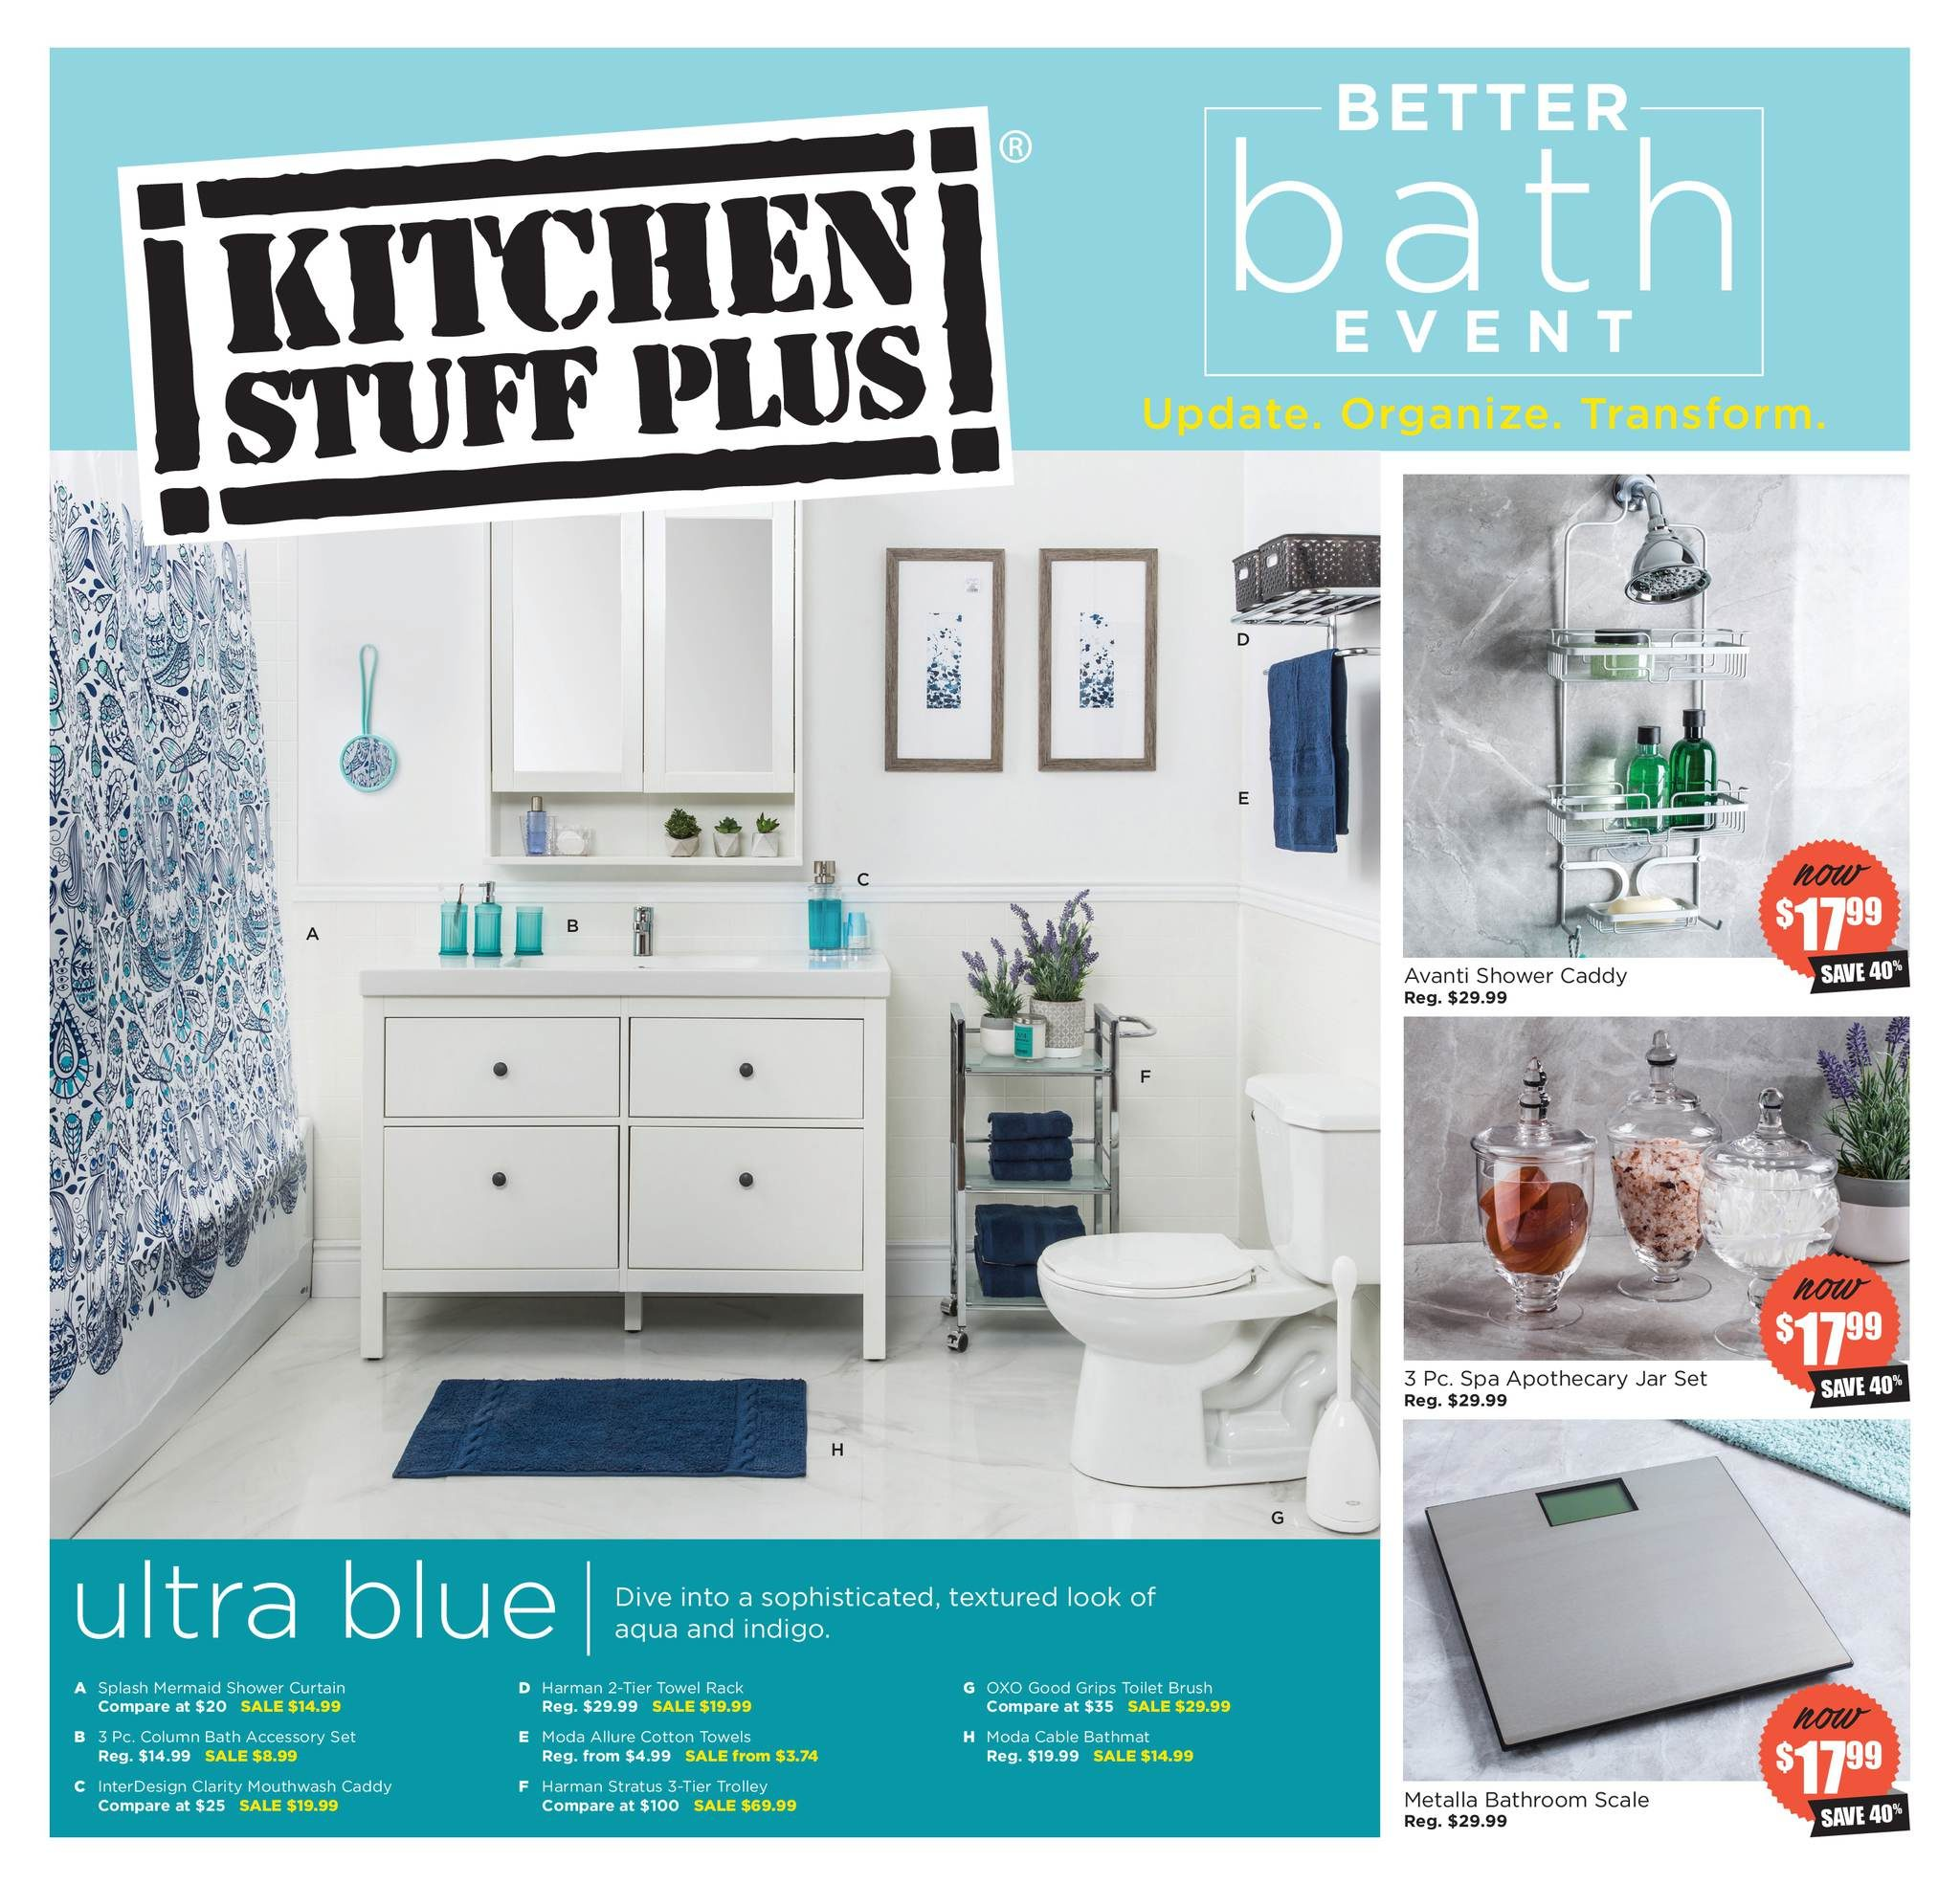 kitchen stuff on sale quality knives plus weekly flyer better bath event feb 15 mar